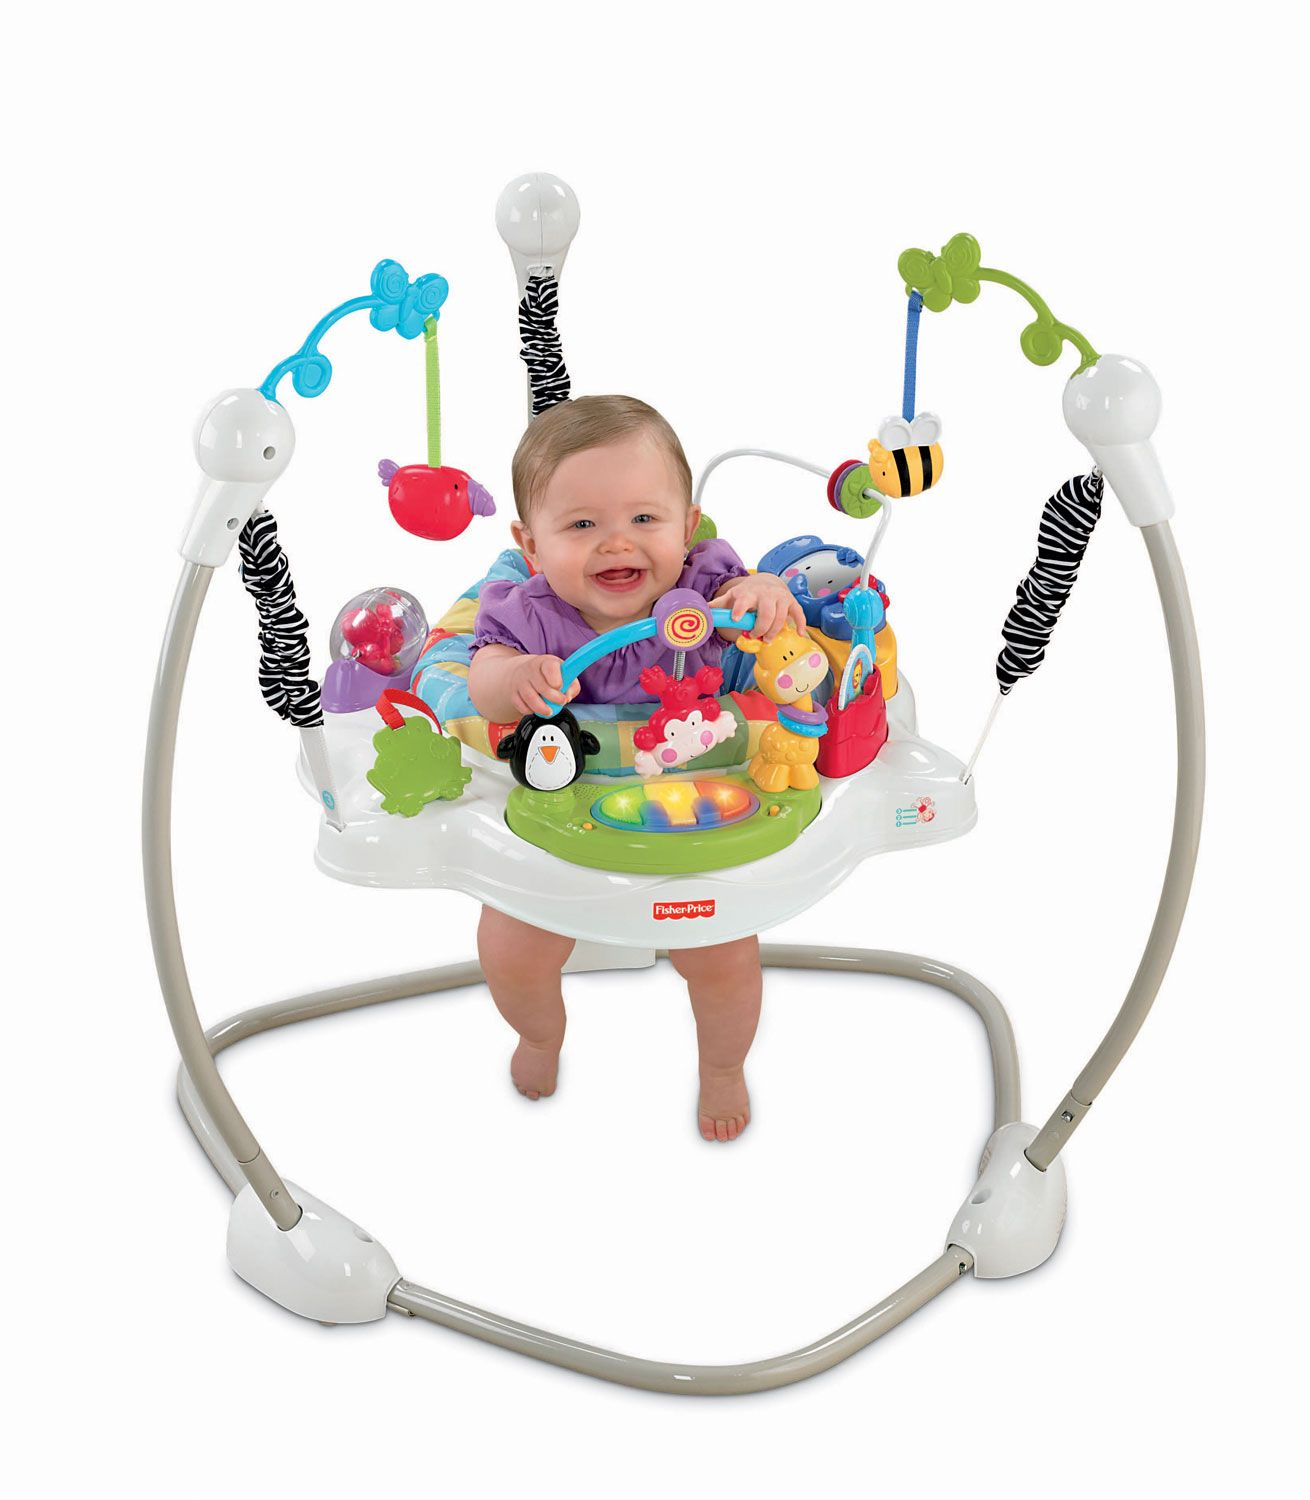 Buy your Fisher Price Discover & Grow Jumperoo from